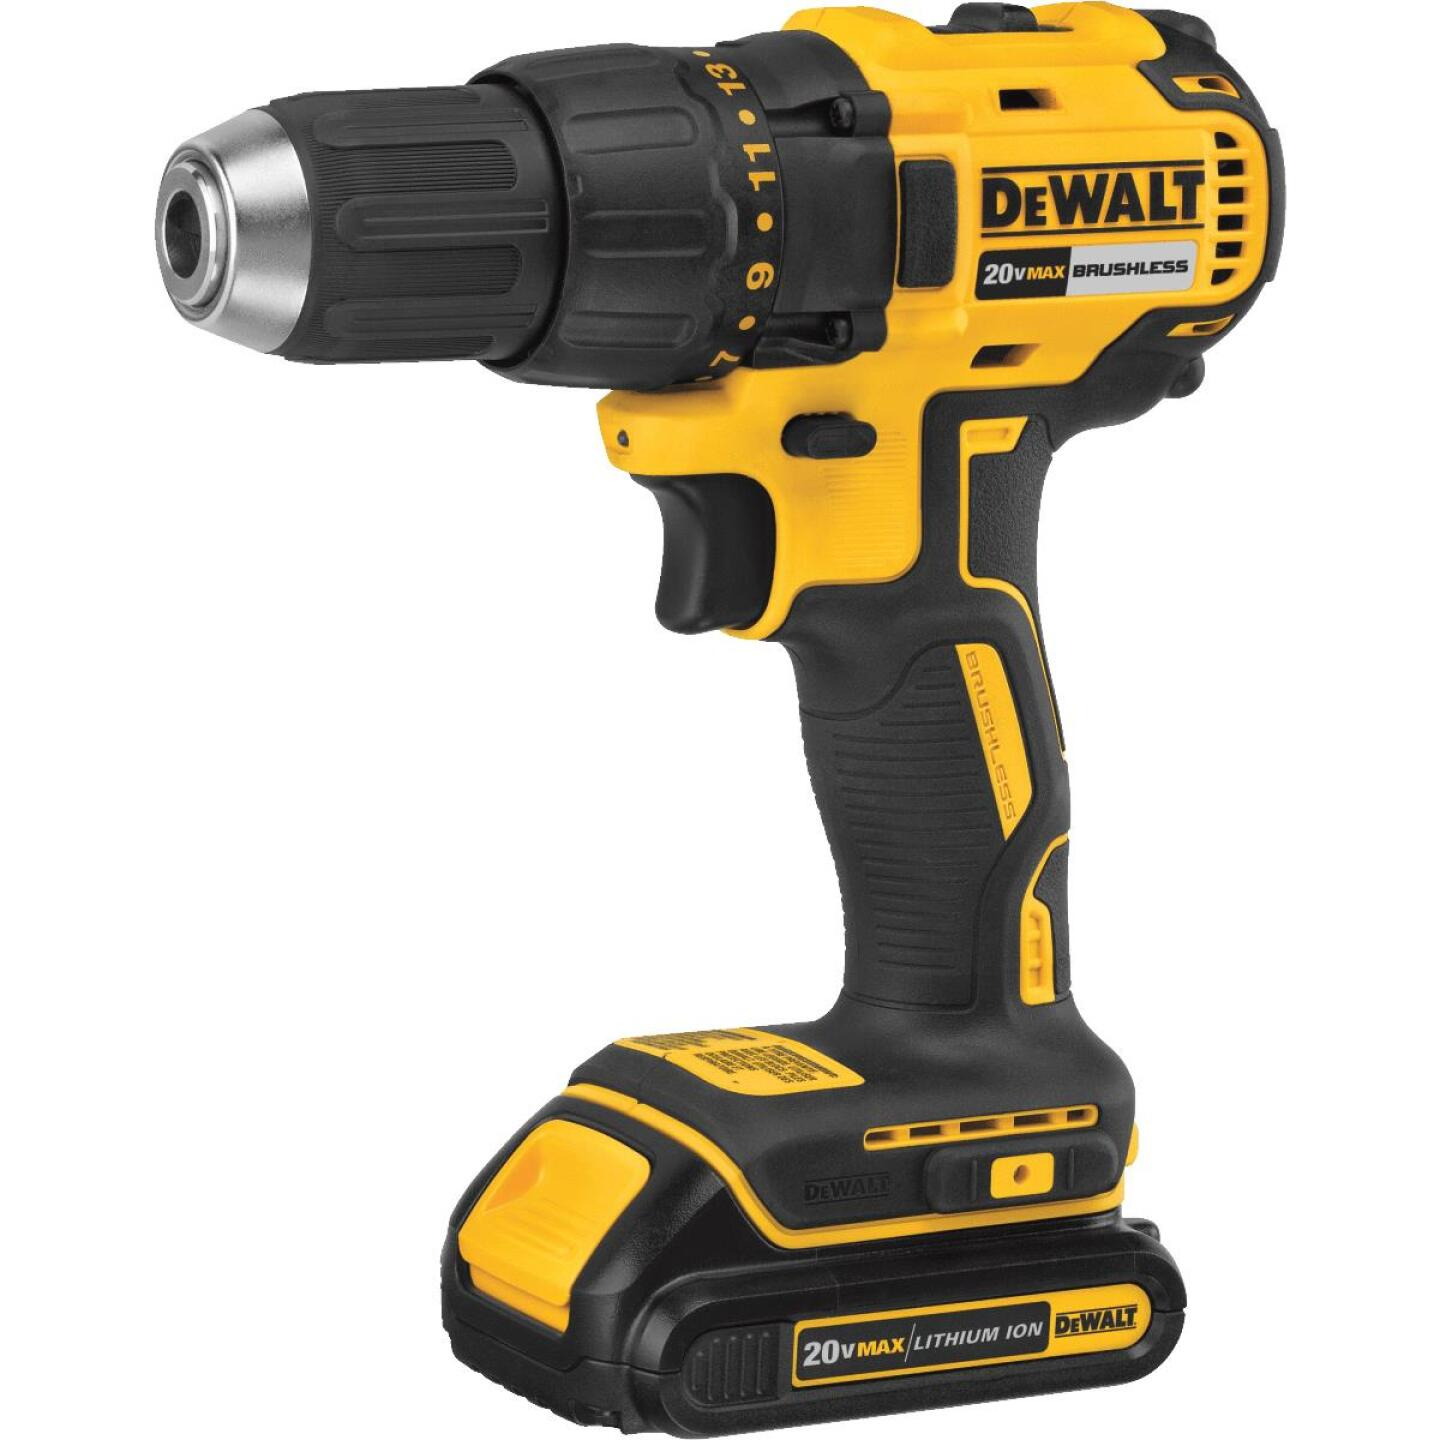 DeWalt 20 Volt MAX Lithium-Ion Brushless 1/2 In. Compact Cordless Drill Kit Image 3